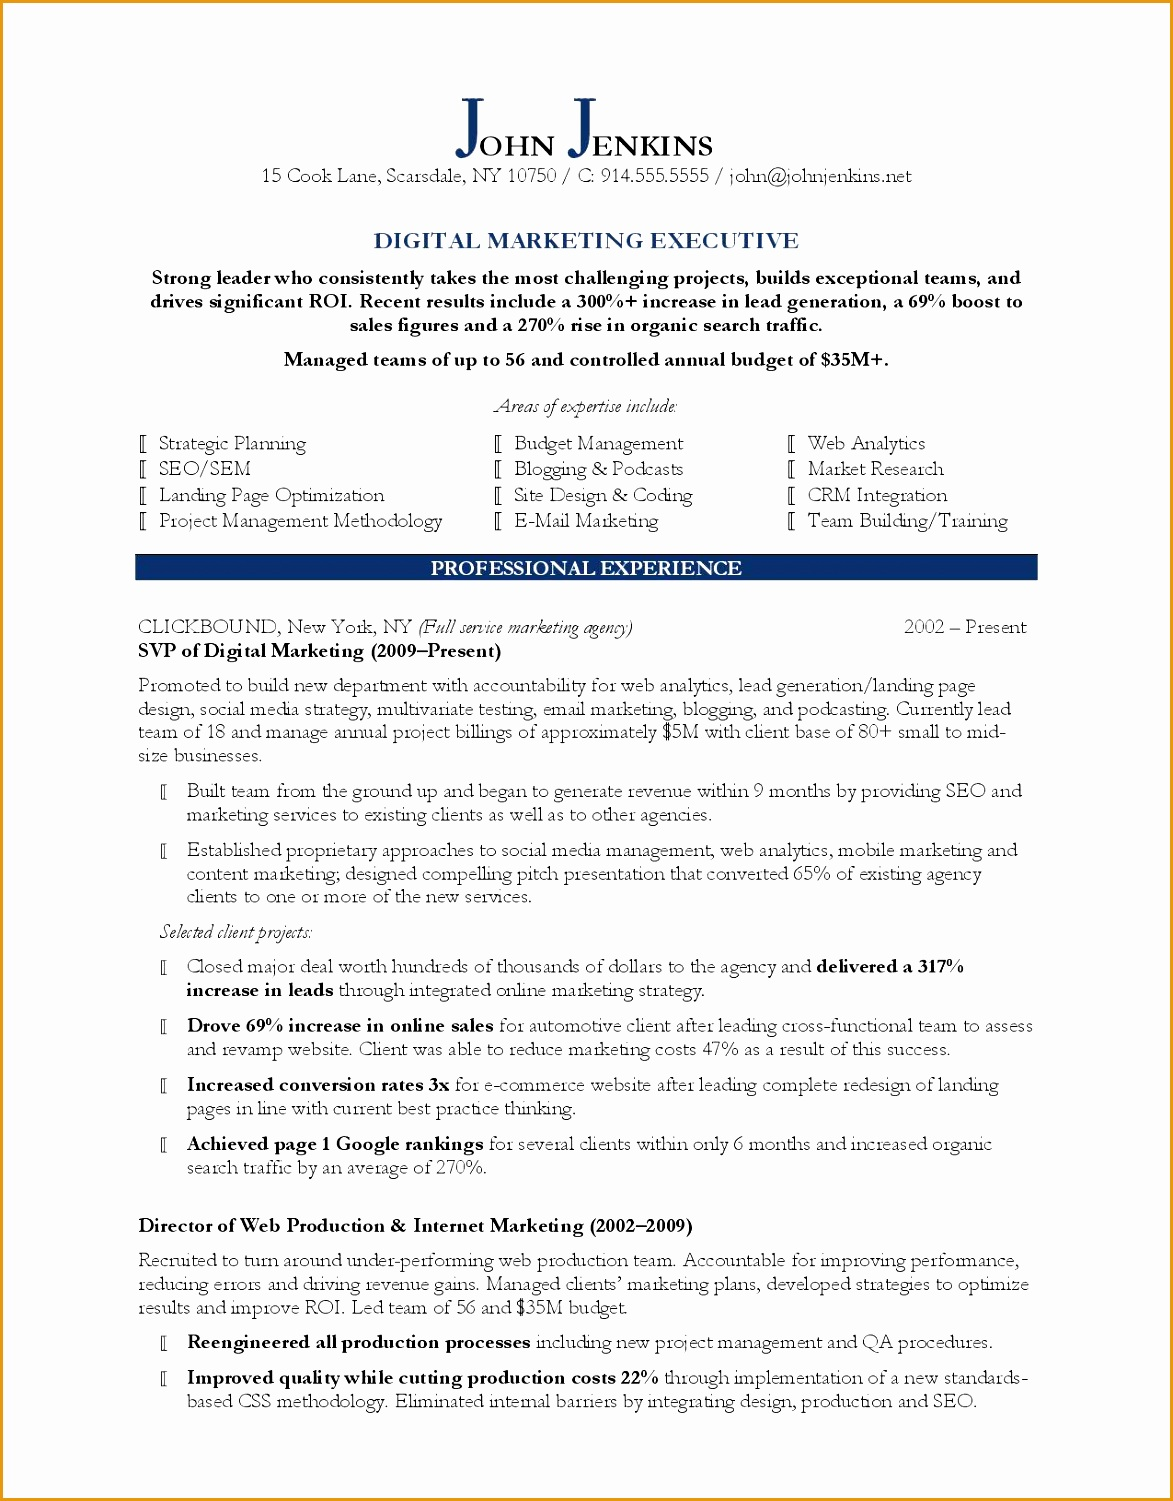 Digital Marketing Executive resume example15011173